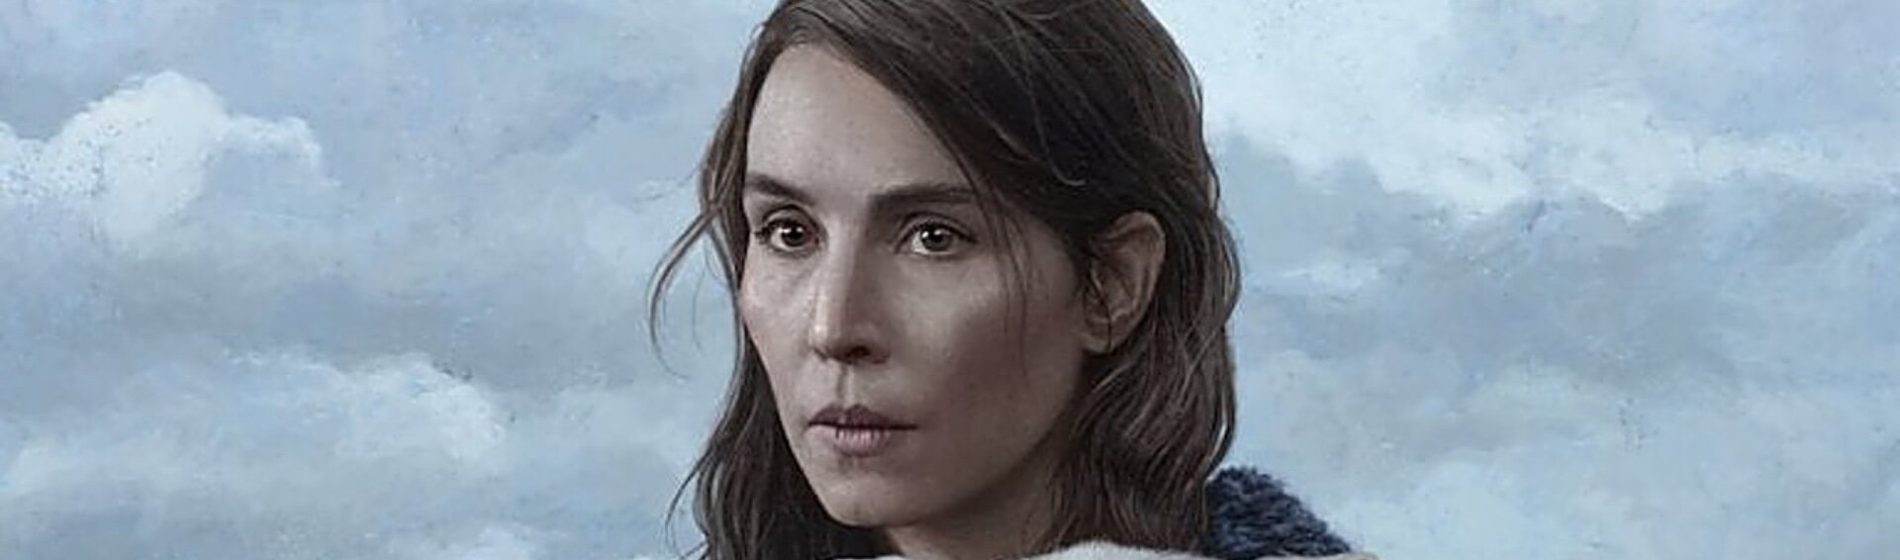 Lamb poster with Noomi Rapace